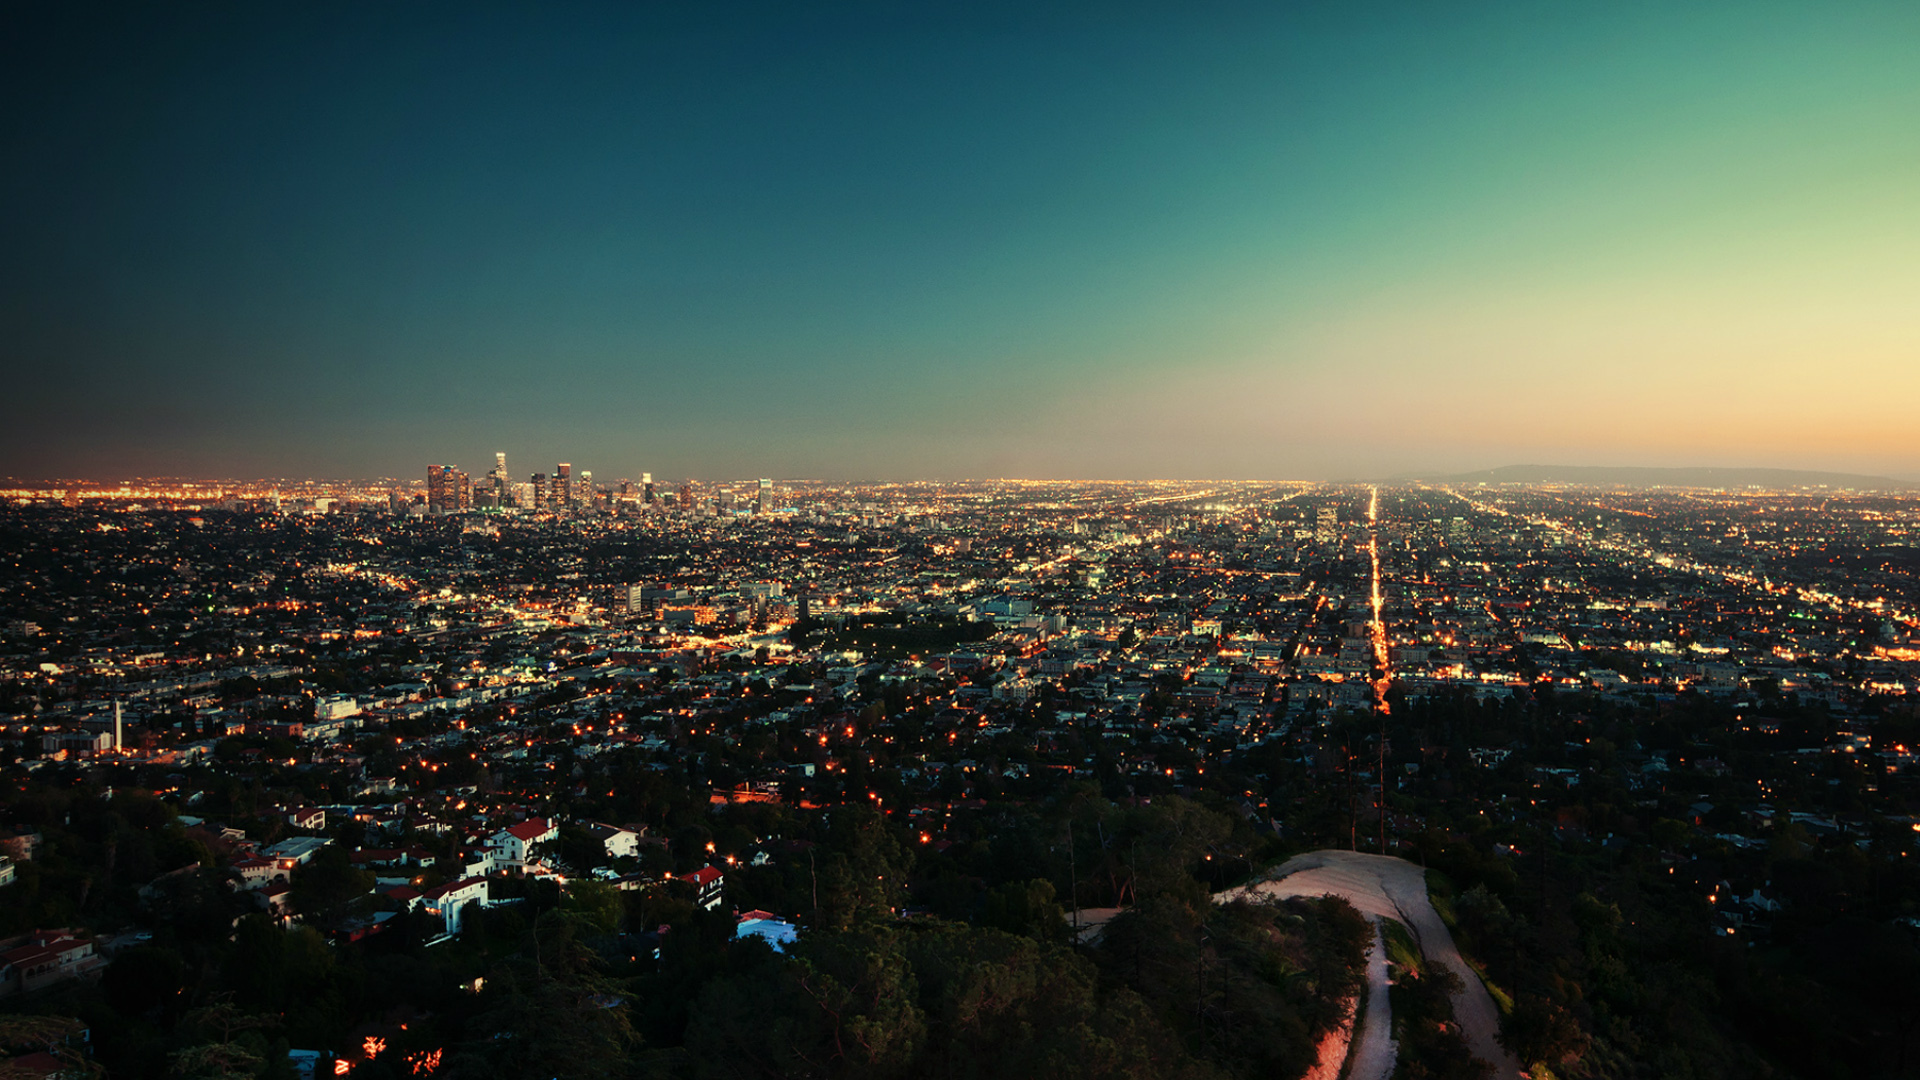 Stunning Los Angeles Wallpaper 21308